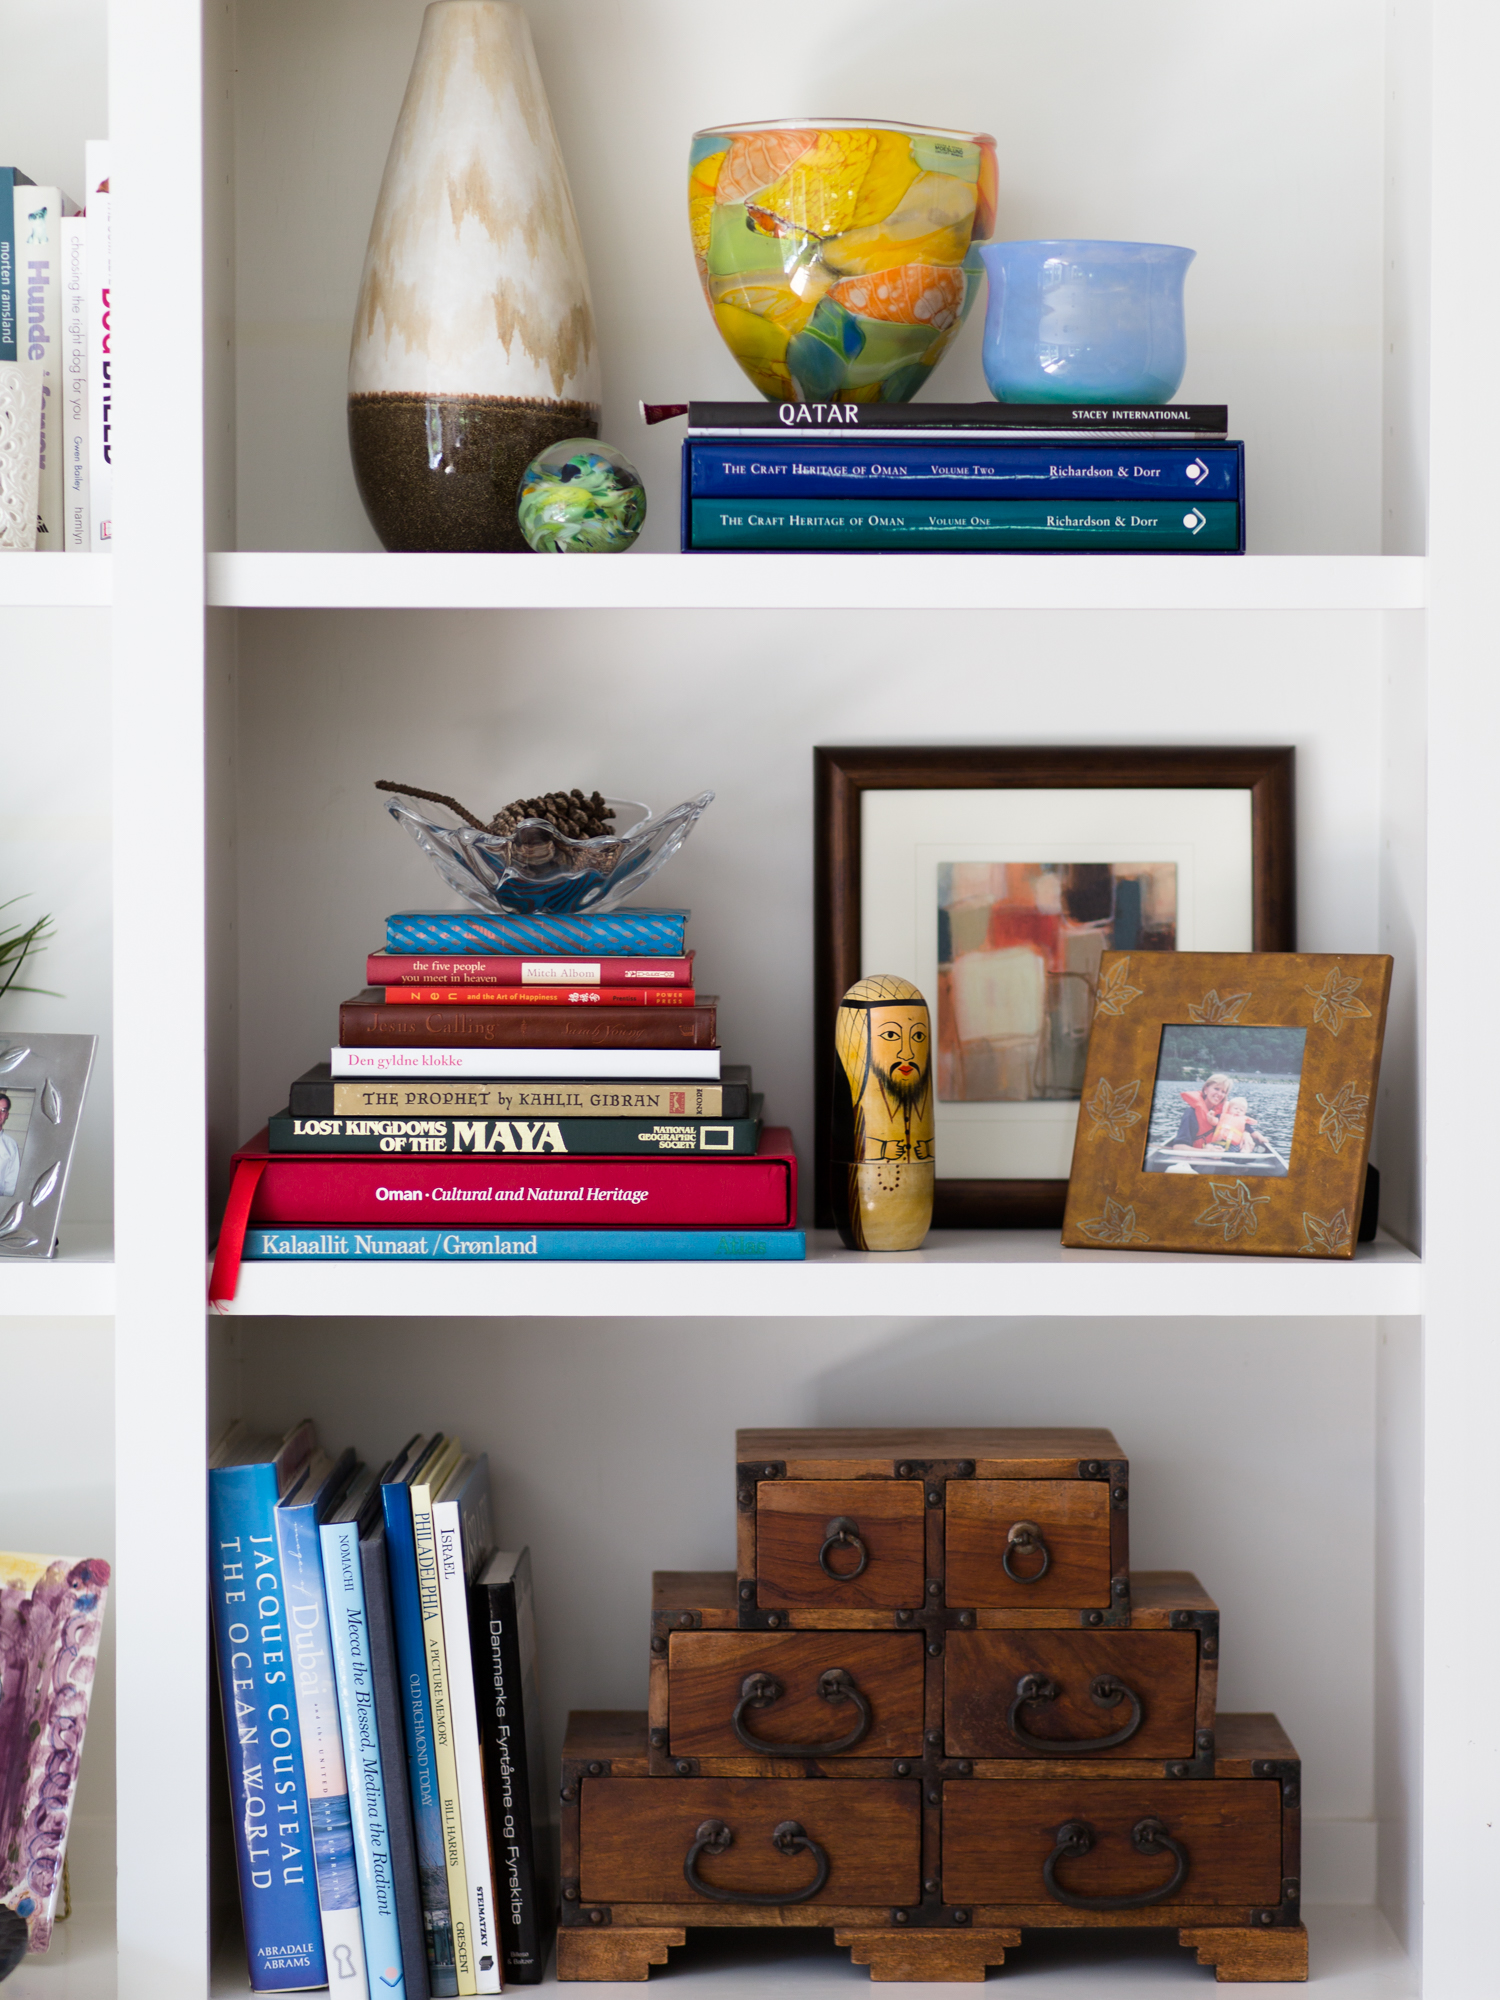 Bookshelf Styling - the large two-toned vase from At Home fit in with the other, more colorful glass pieces of the homeowner's. The small framed art piece from At Home provided a nice colorful backdrop for personal momentoes.